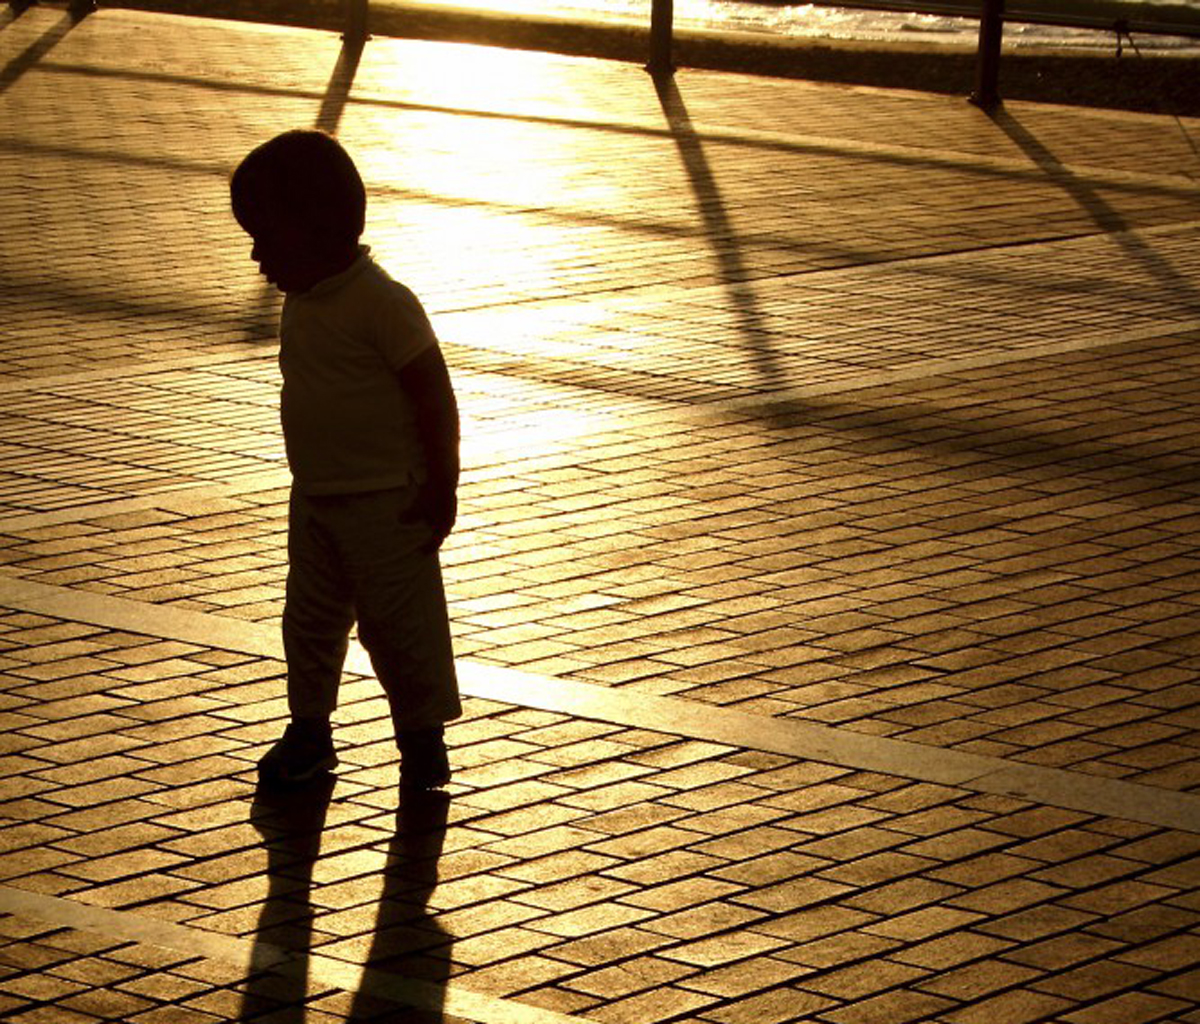 Color photo of a young child's silhouette, walking on brick pavement